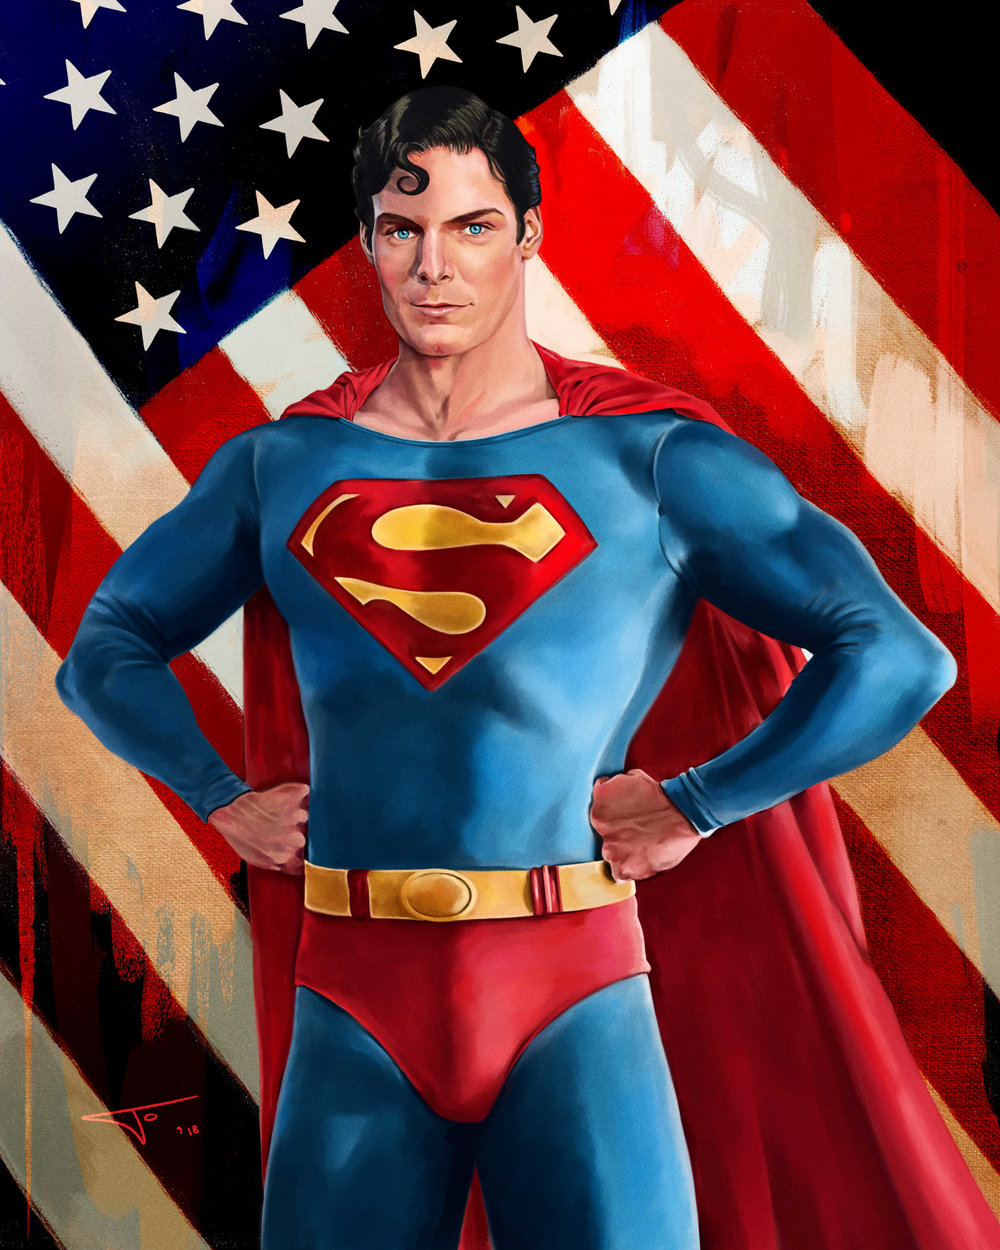 Superman Christopher Reeve Low-Res.jpg